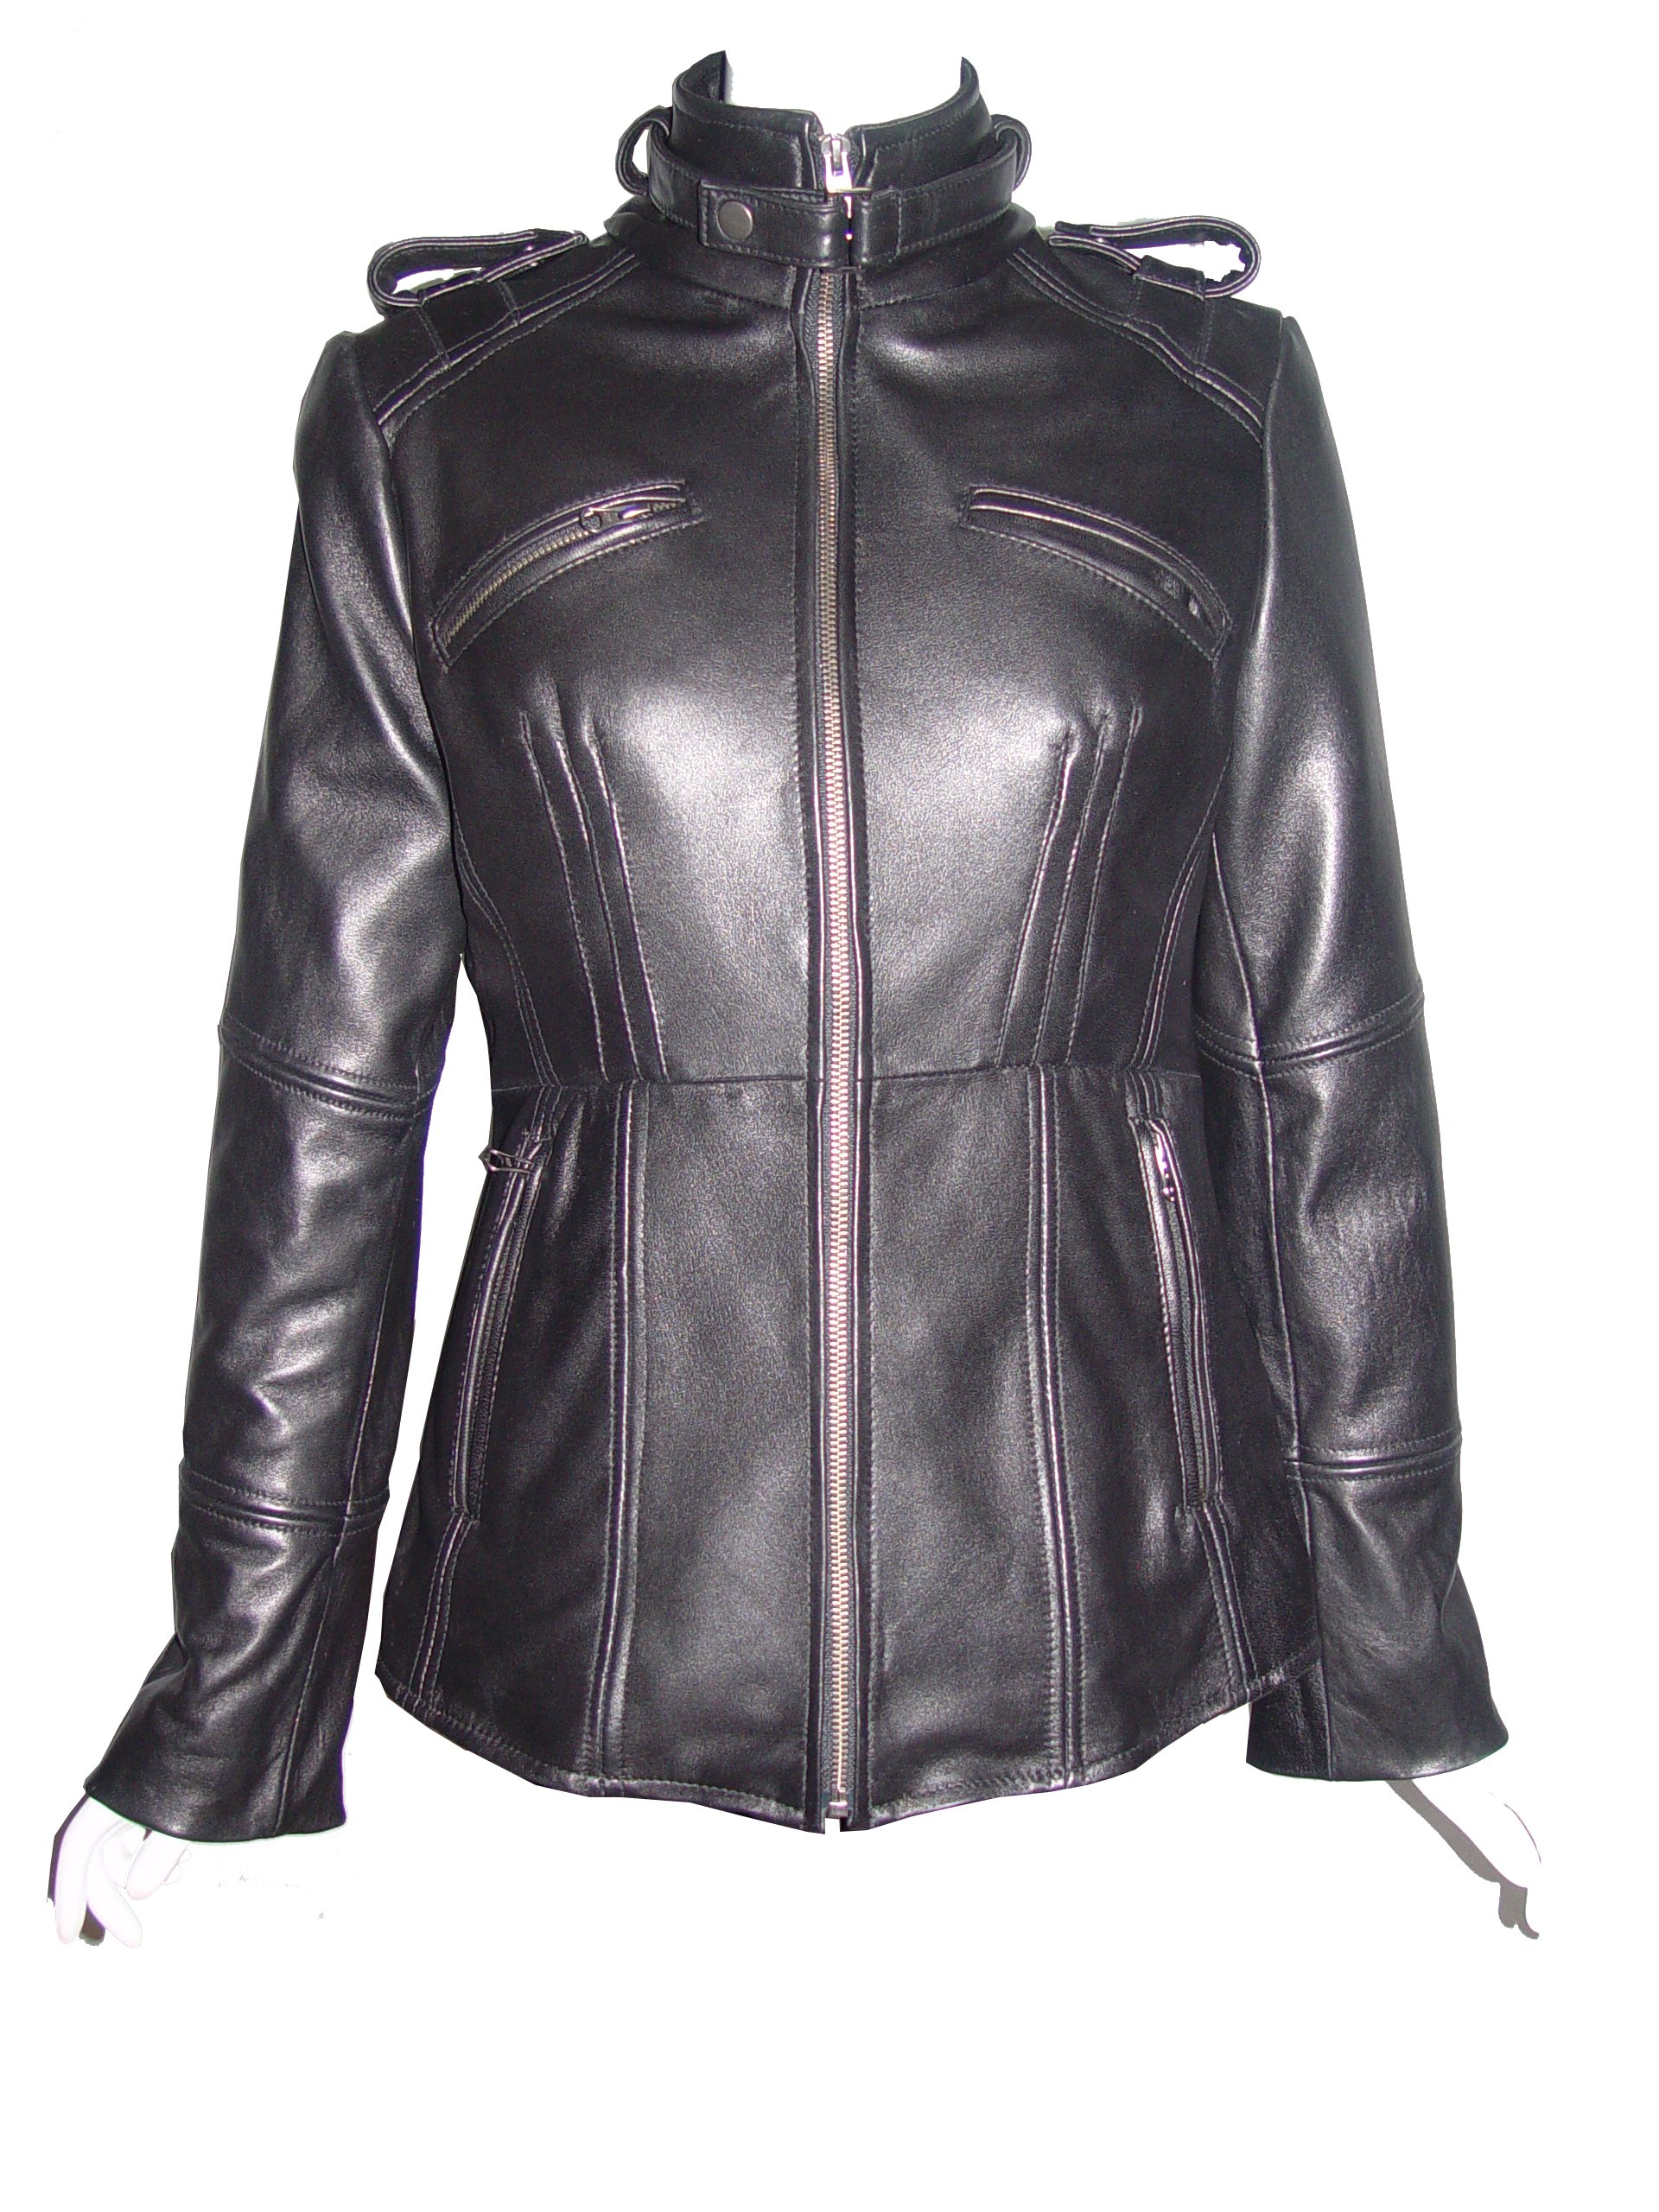 Nettailor 4205 Fine Leather Motorcycle Jackets Ladies Genuine Lambskin